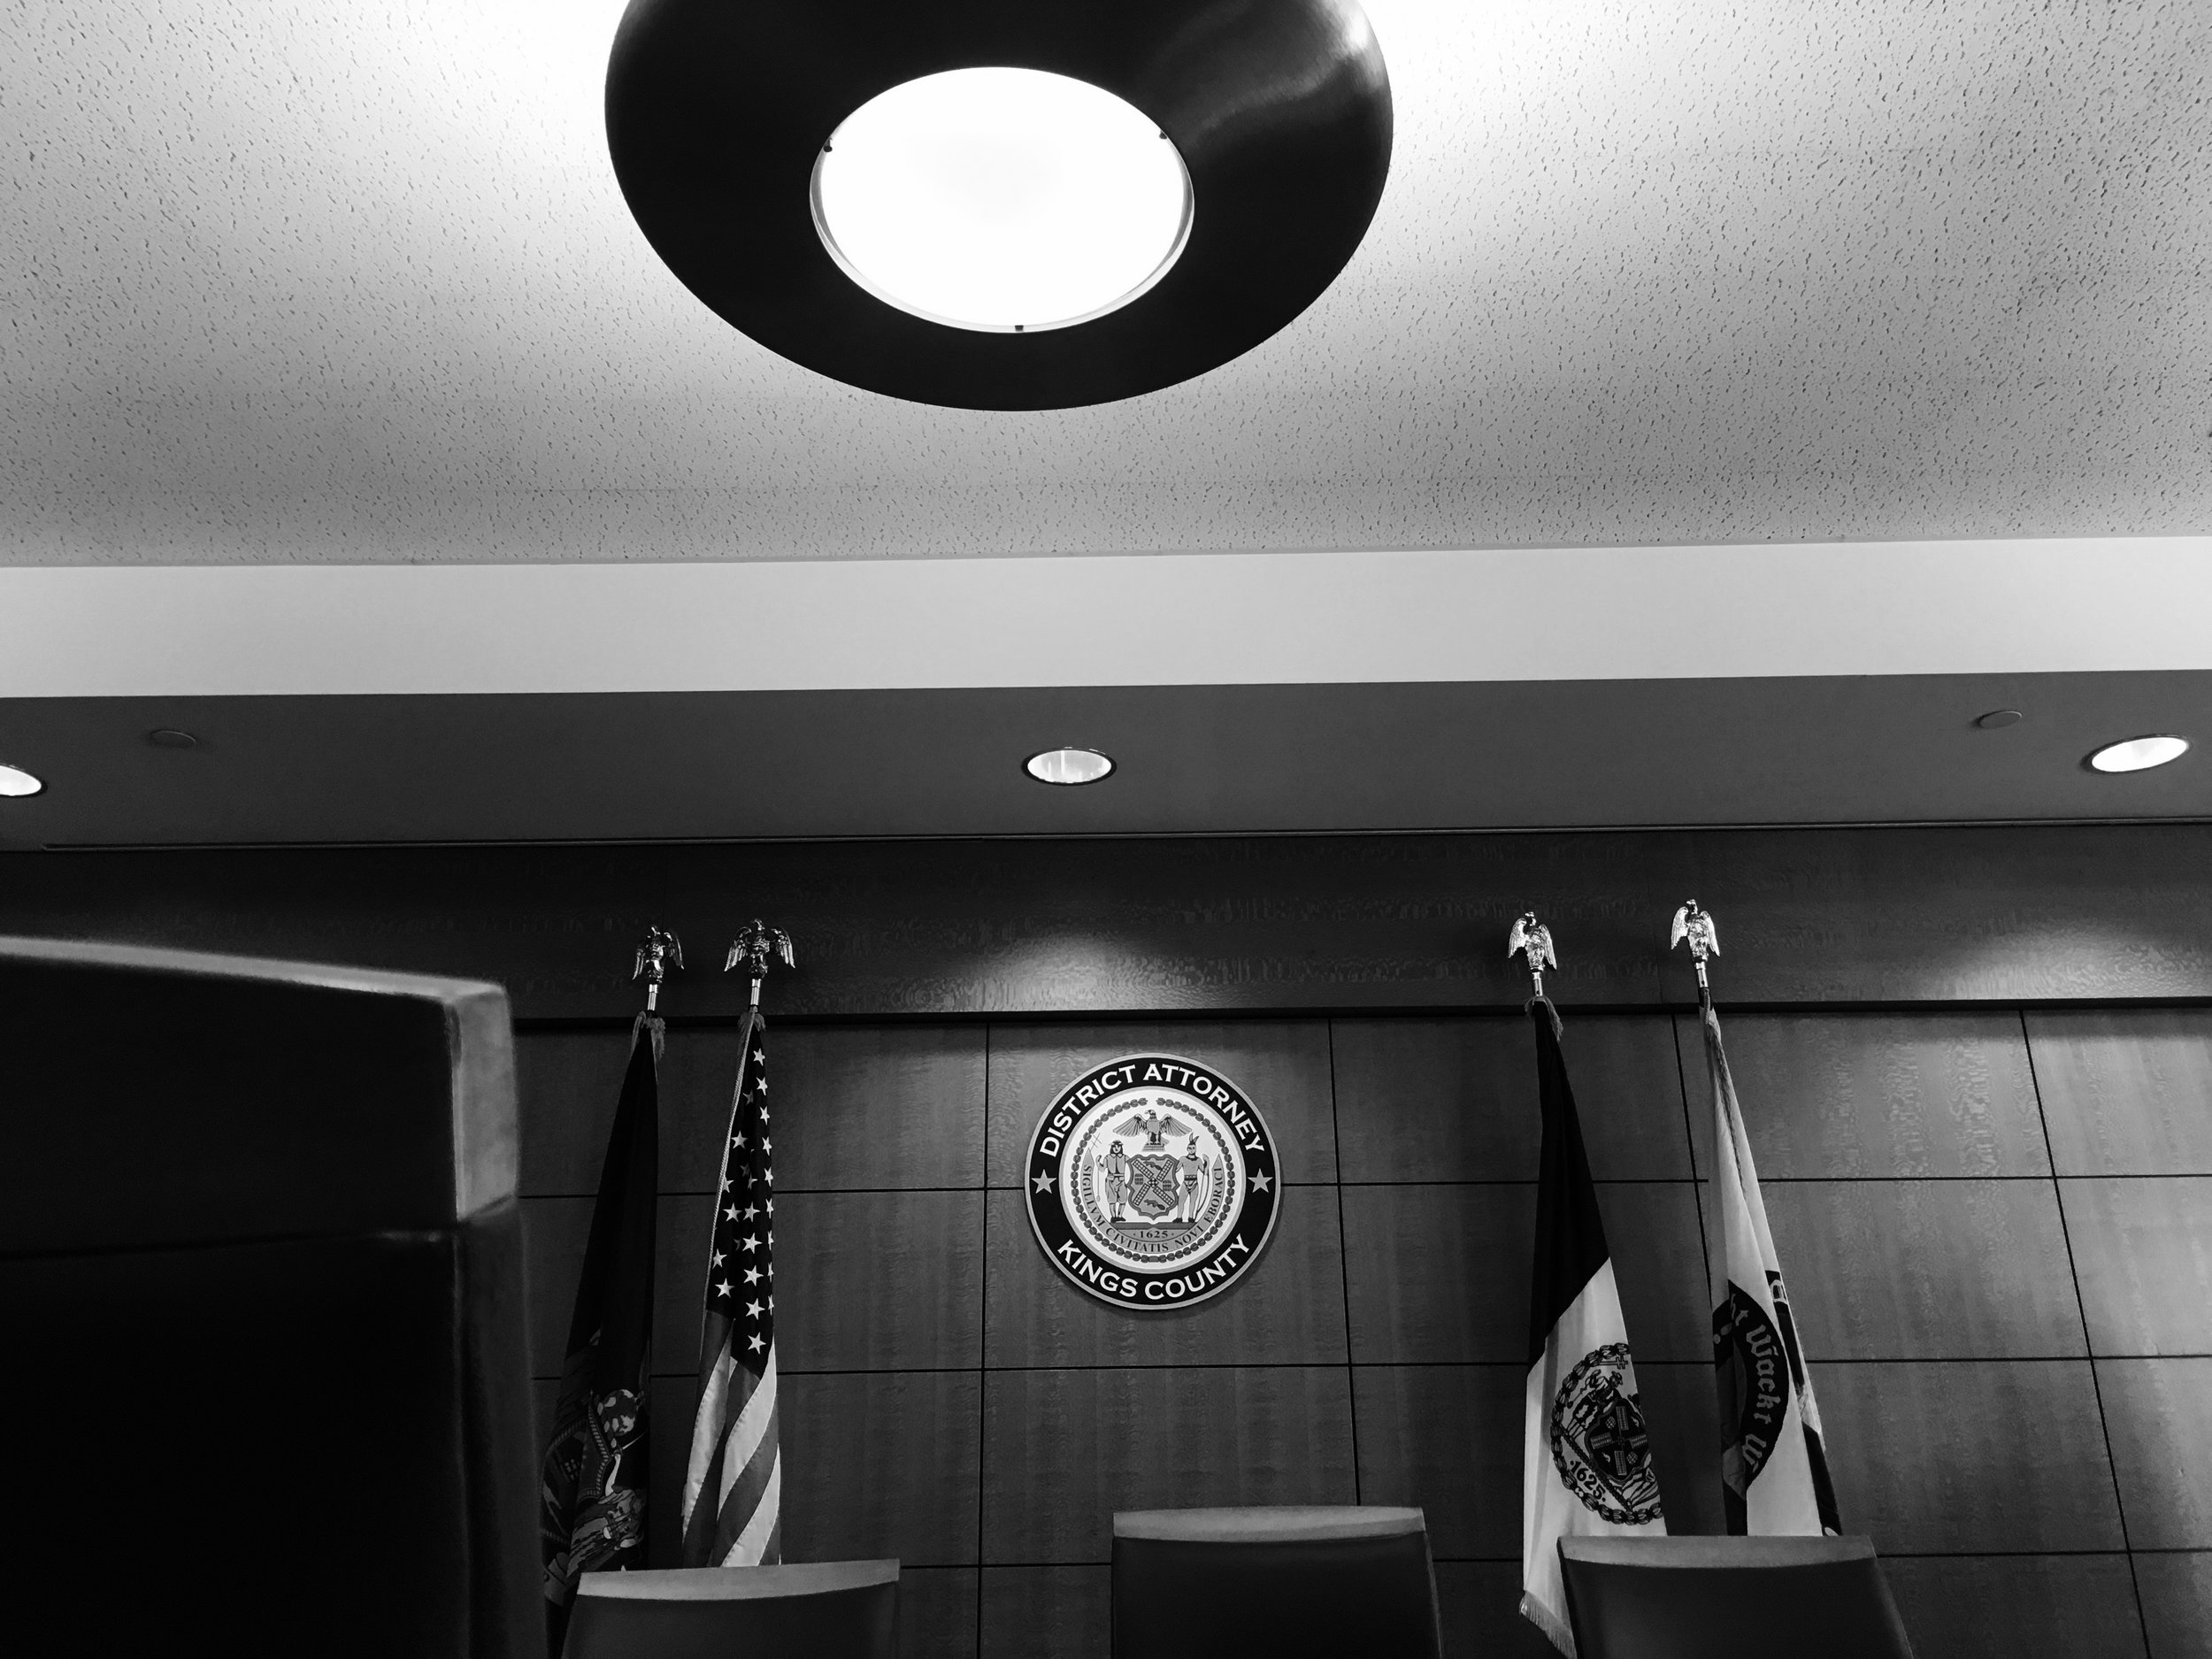 The late, District Attorney Ken Thompson's Office. Brooklyn, New York. Such a wonderful, inspiring man. He is missed.